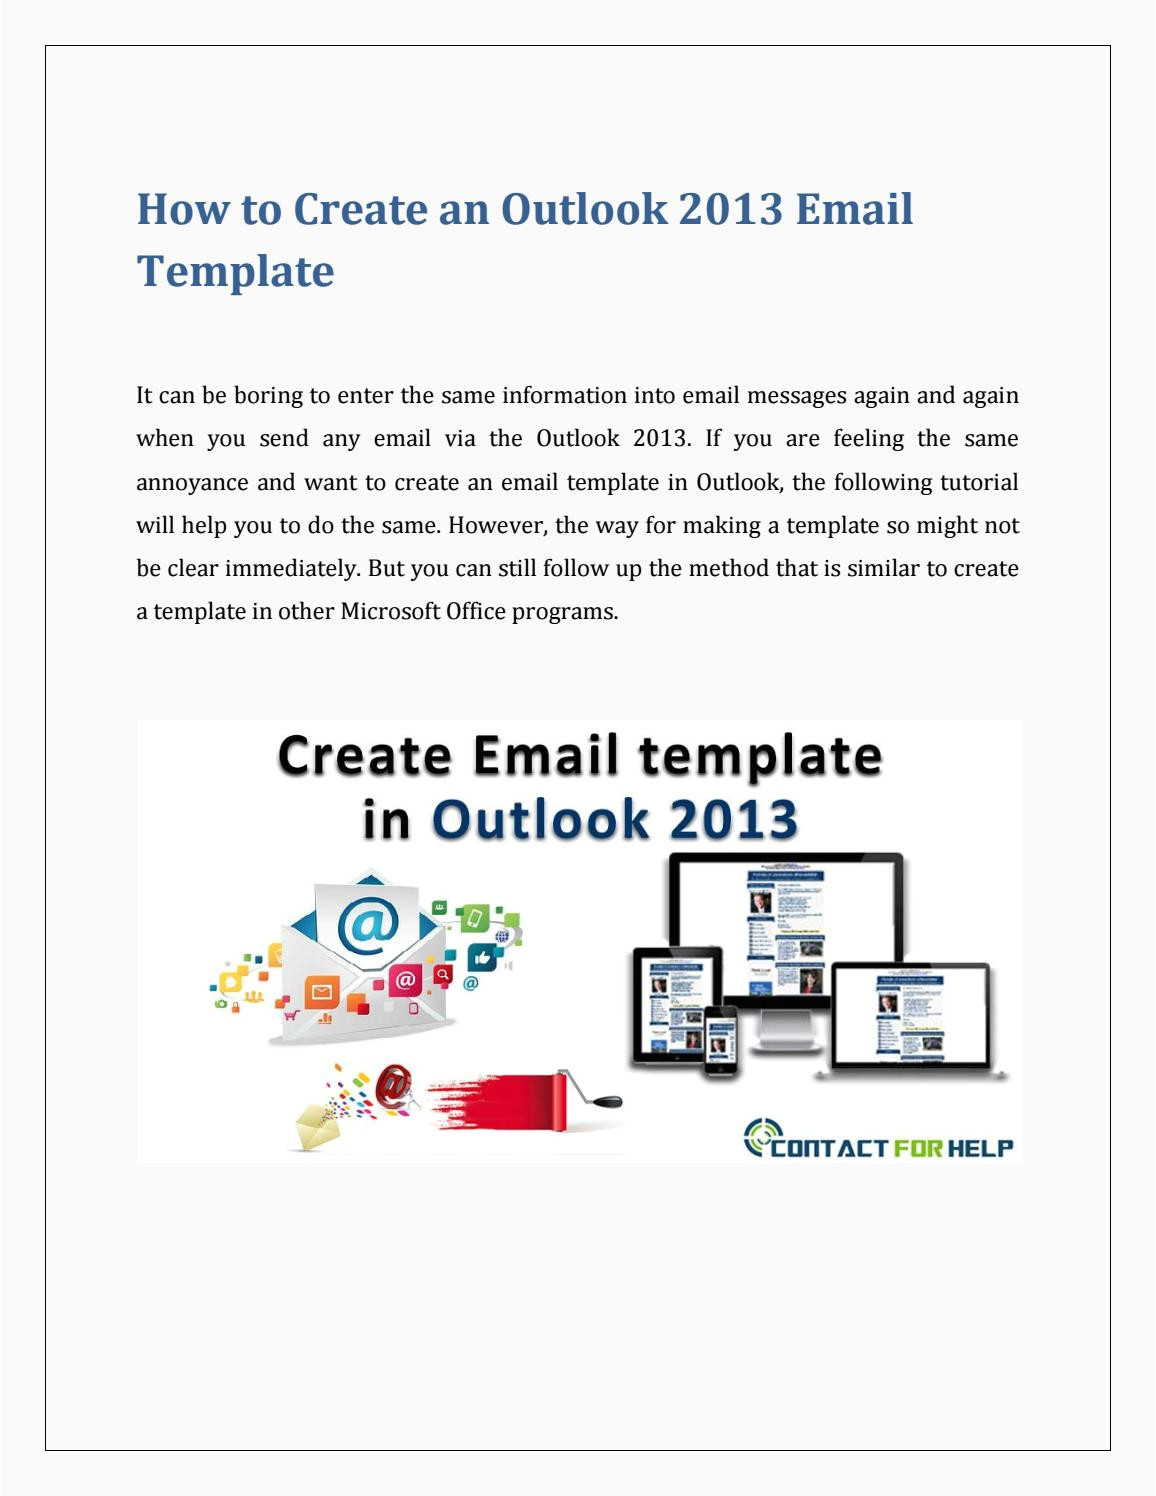 create an email template in outlook